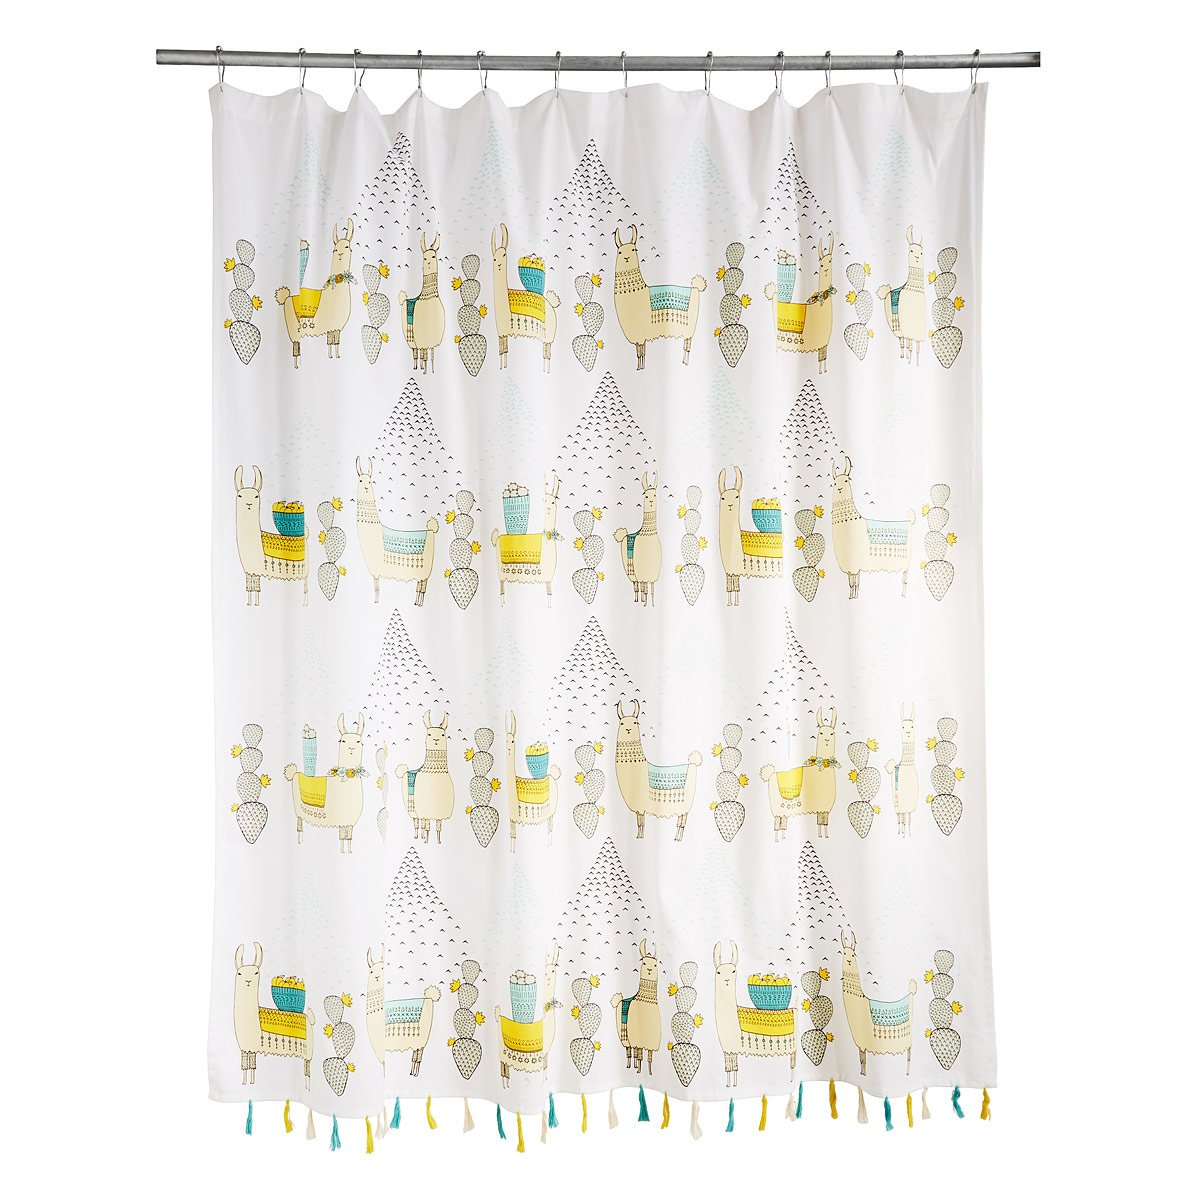 Larry and Friends Llama Shower Curtain | llama decor, llama print ...